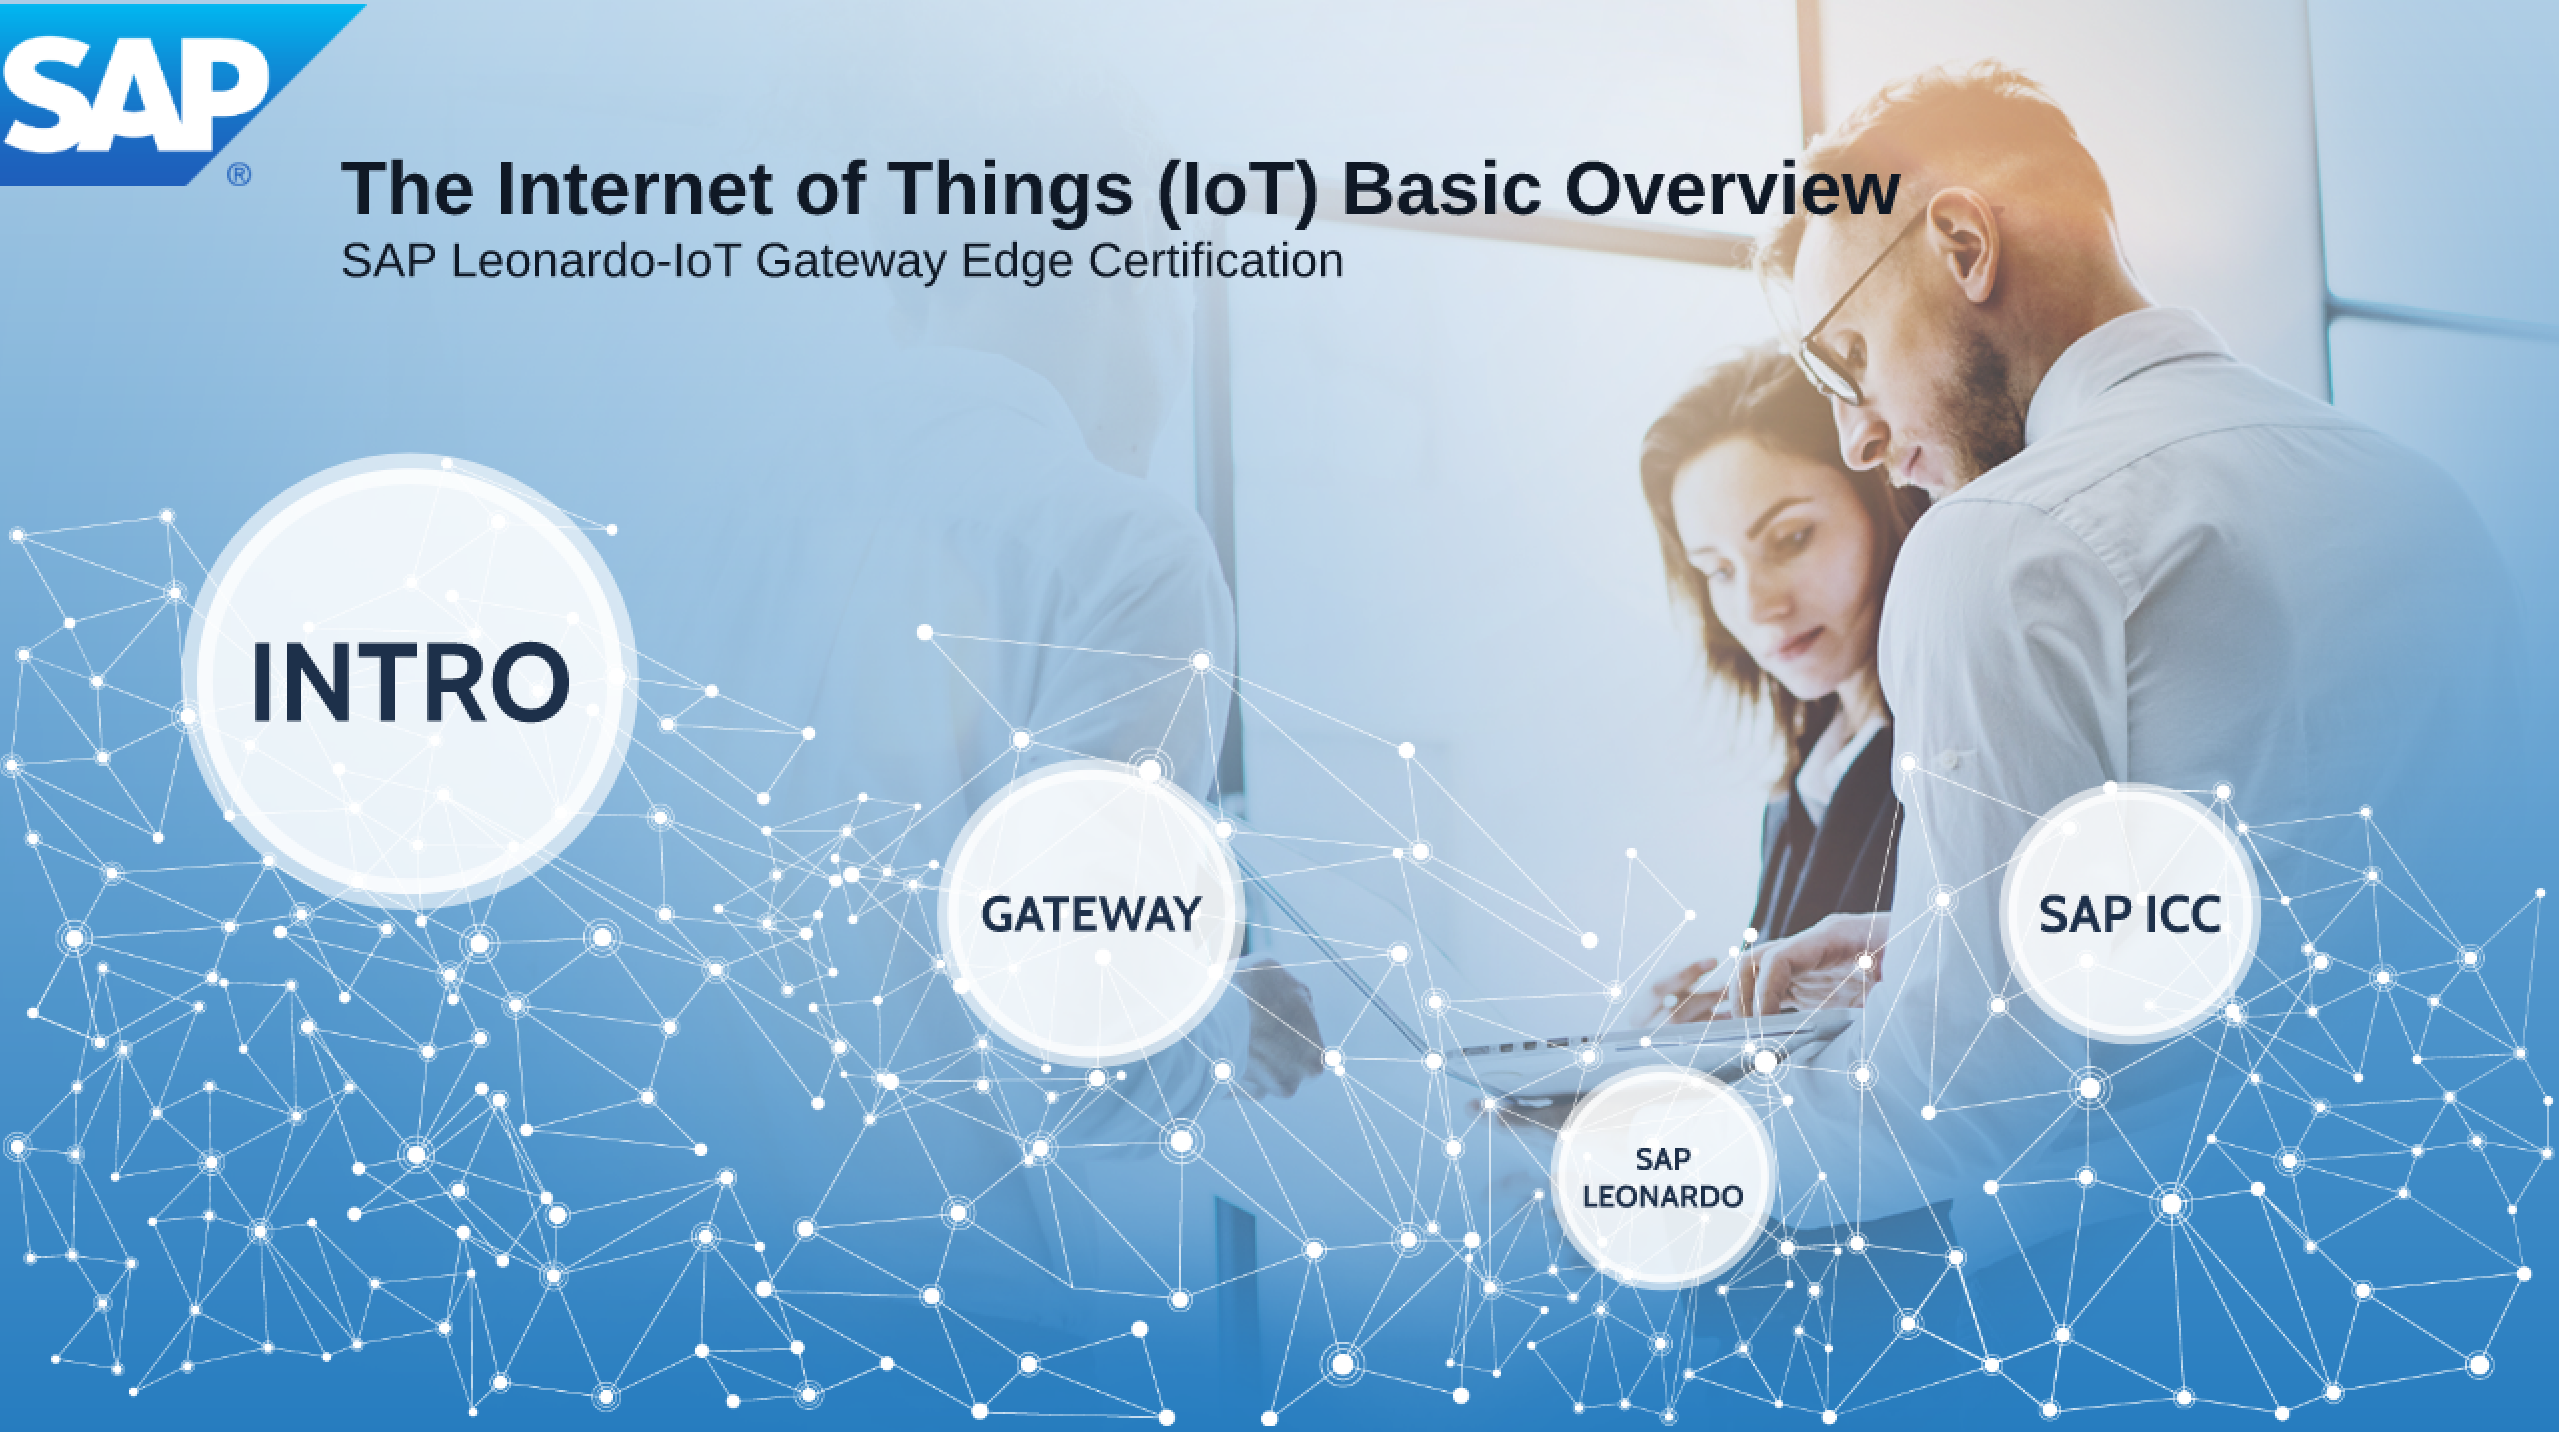 SAP ICC- IoT Gateway Edge Certification - SAP Tips and Tricks From ...